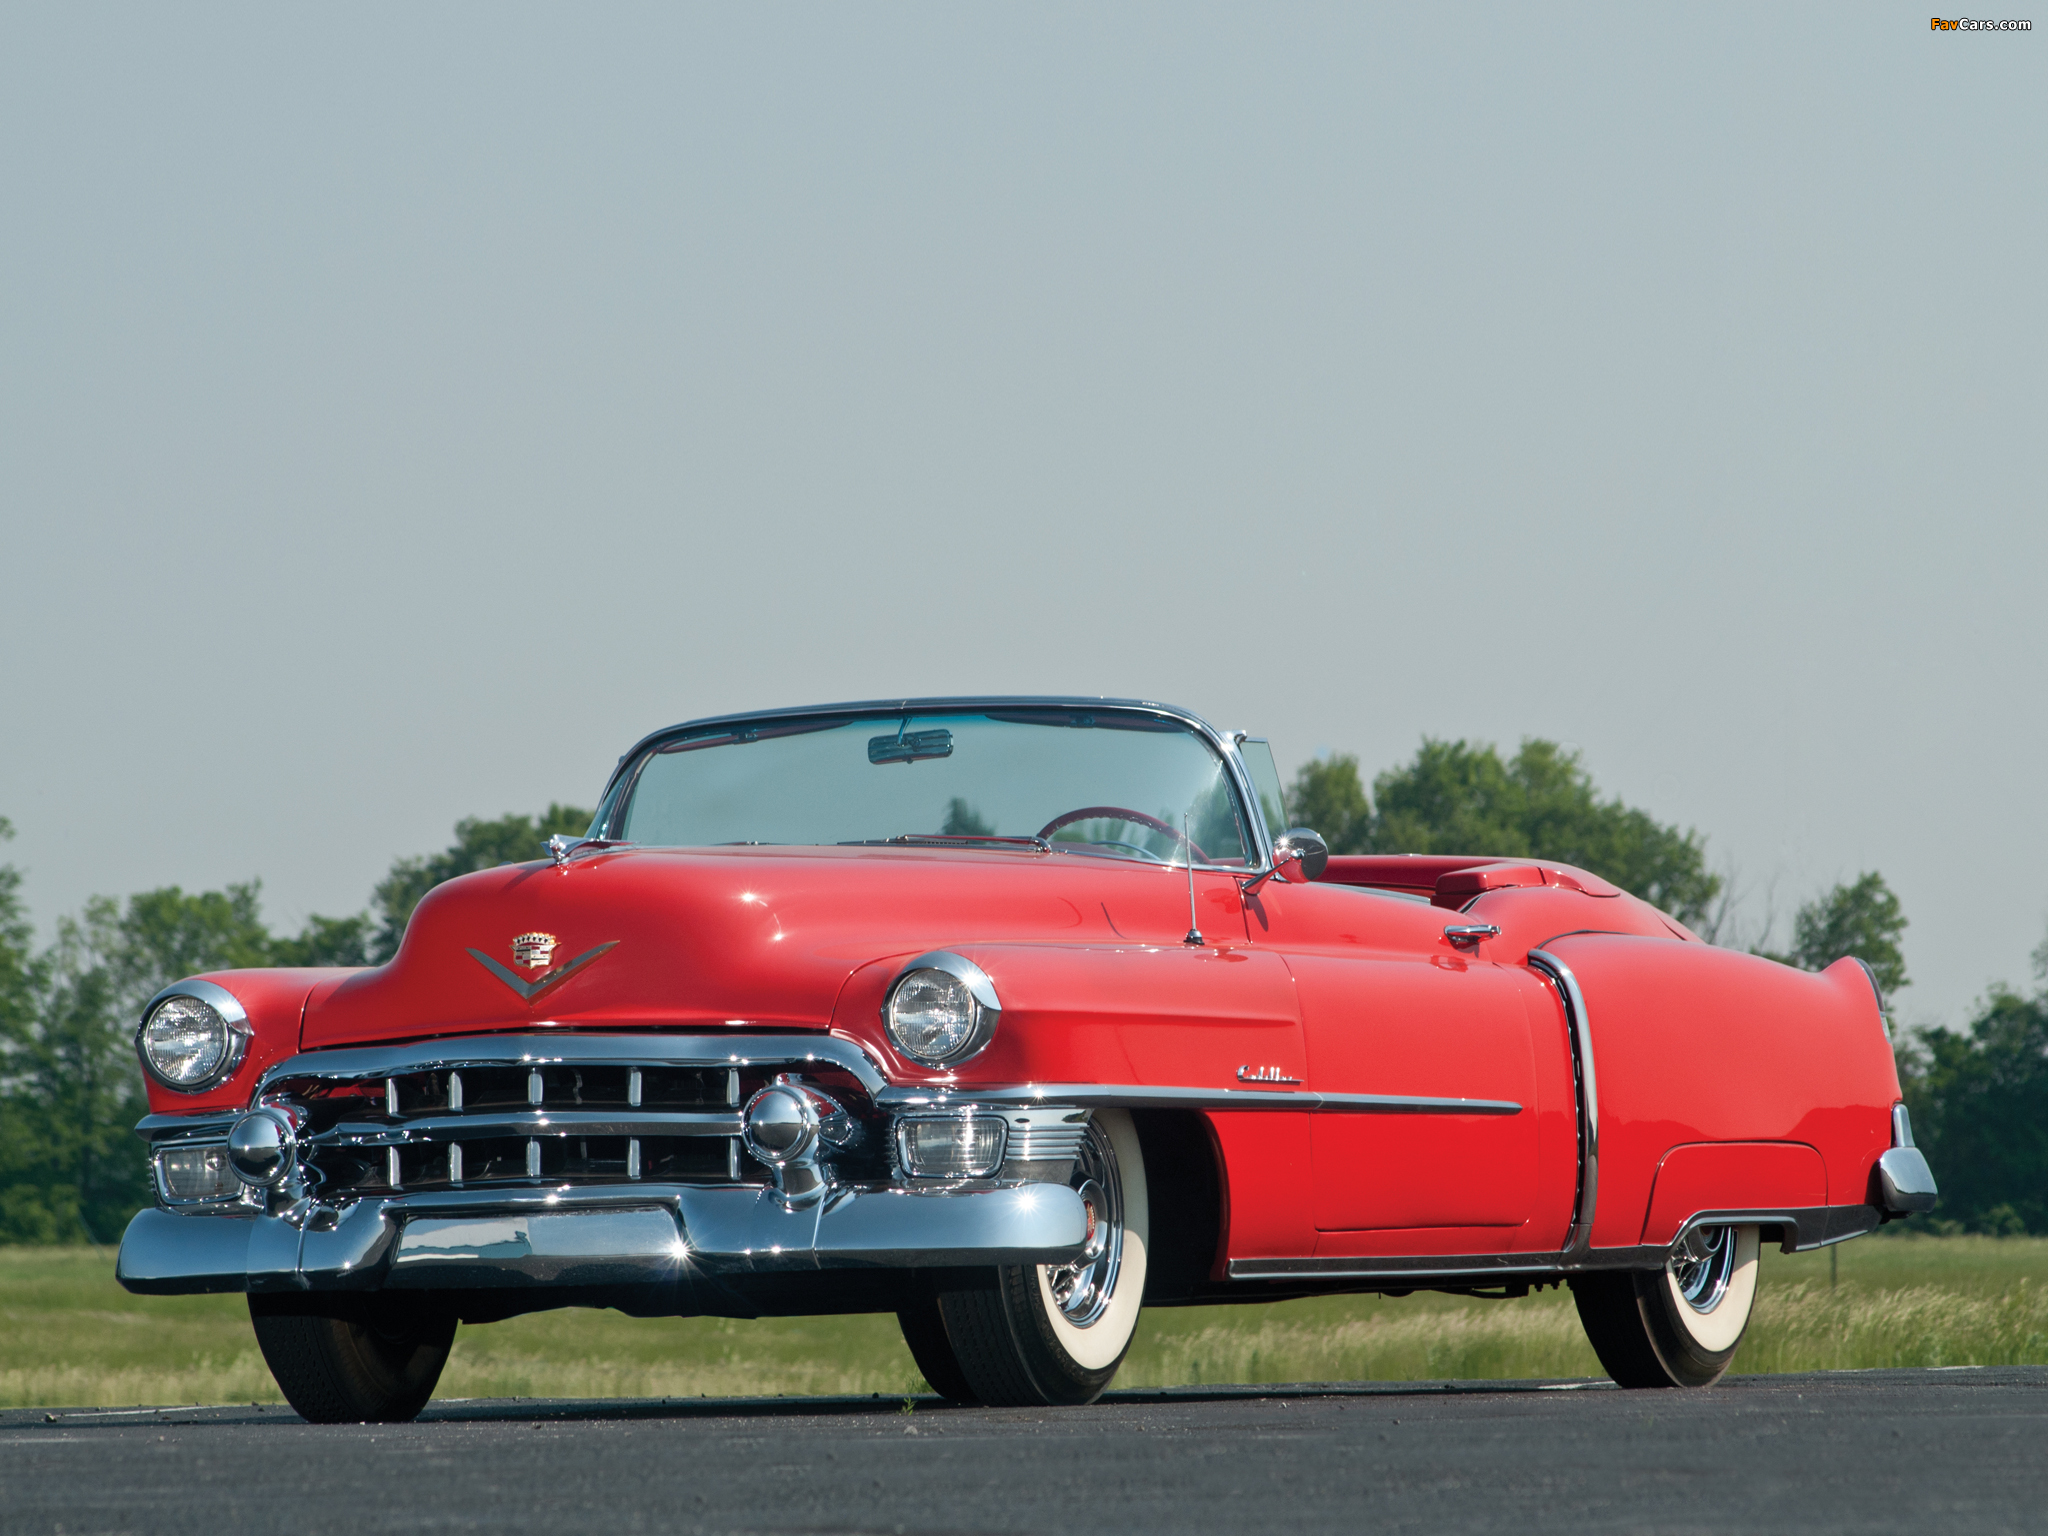 fl c used htm sarasota cadillac near for convertible sale stock deville